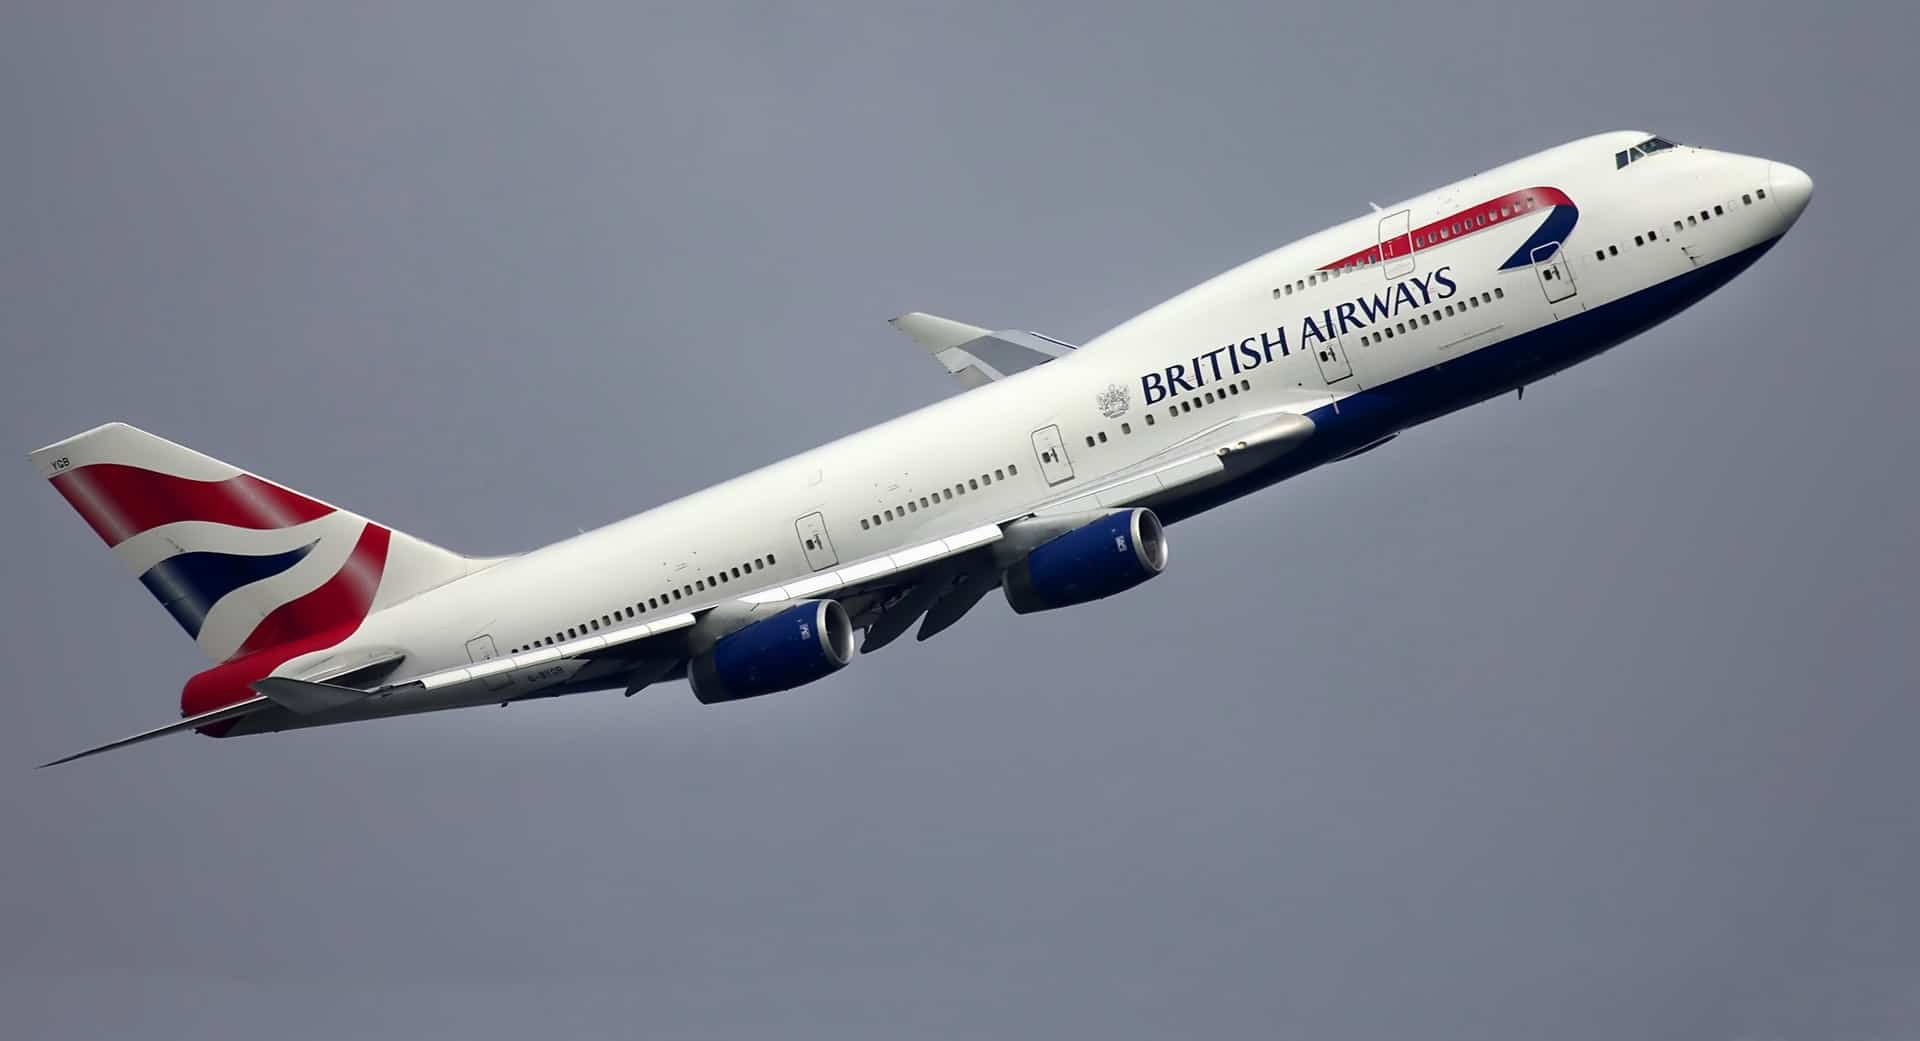 A British Airways Boeing 747. Photo for illustrative purposes.